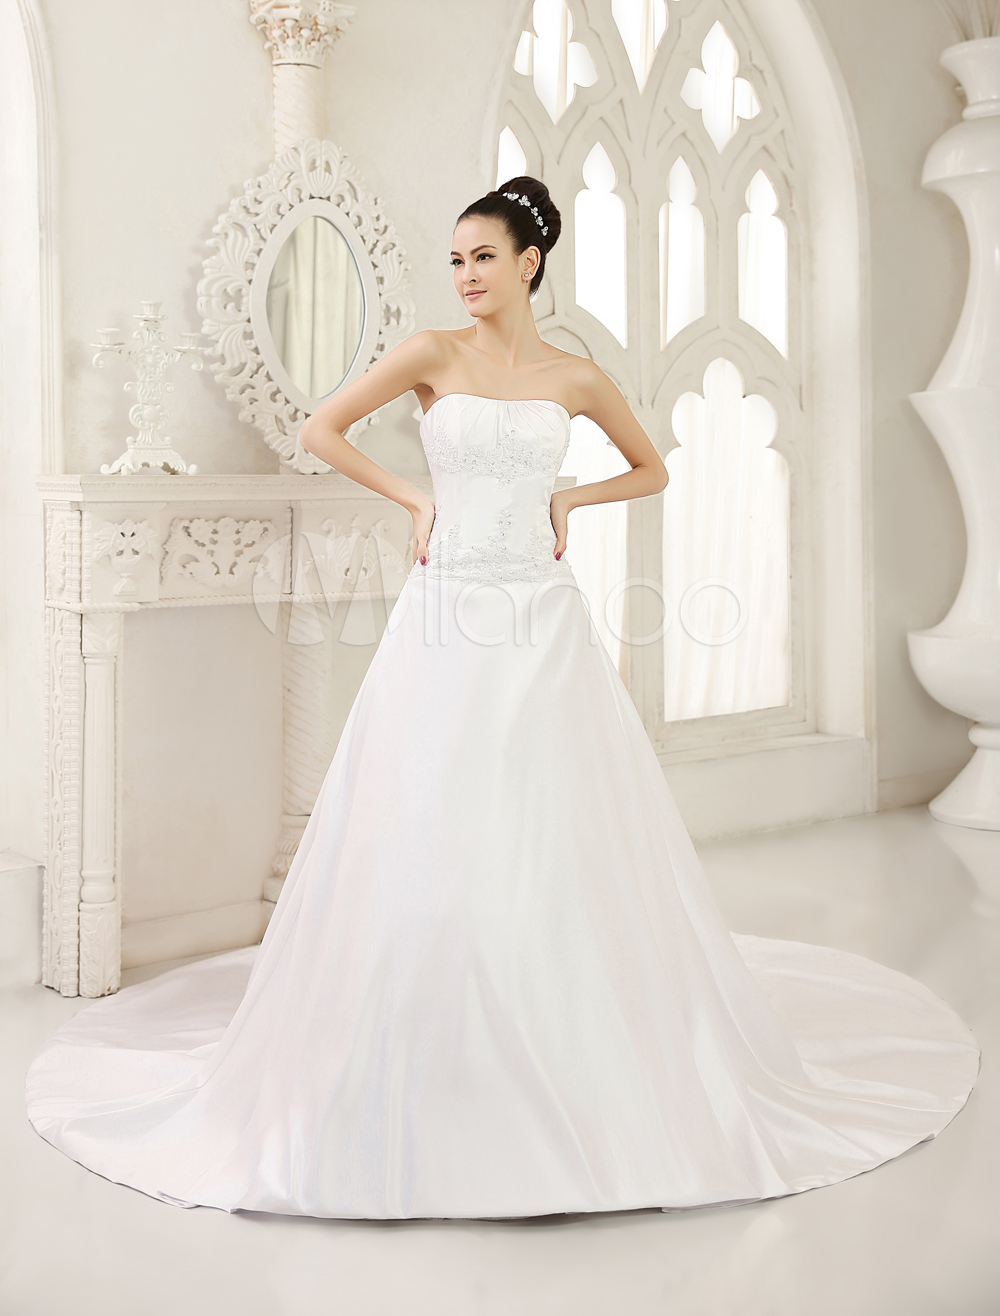 How do you choose your wedding dress